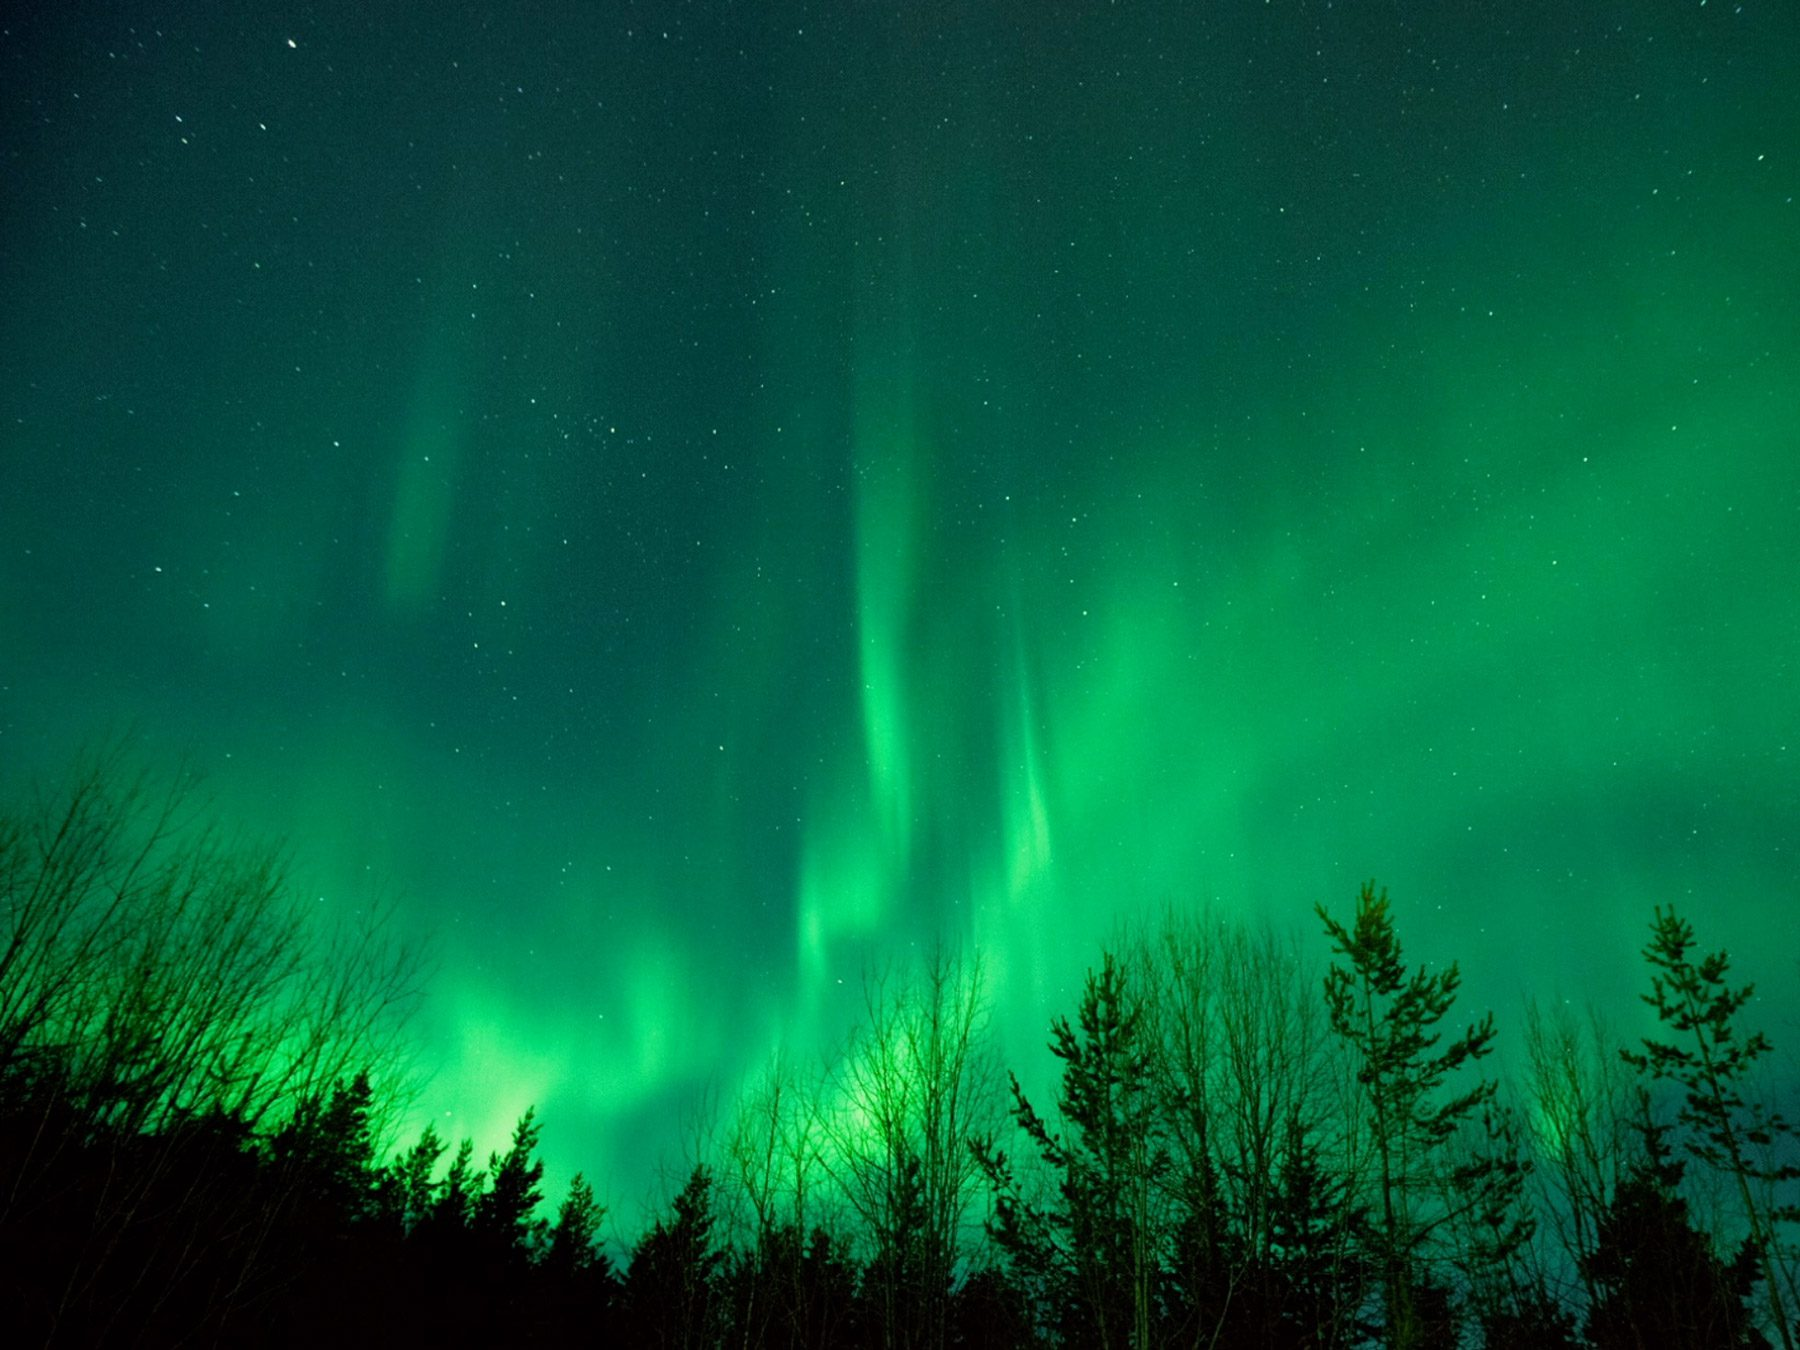 Northern lights with silhouette of trees